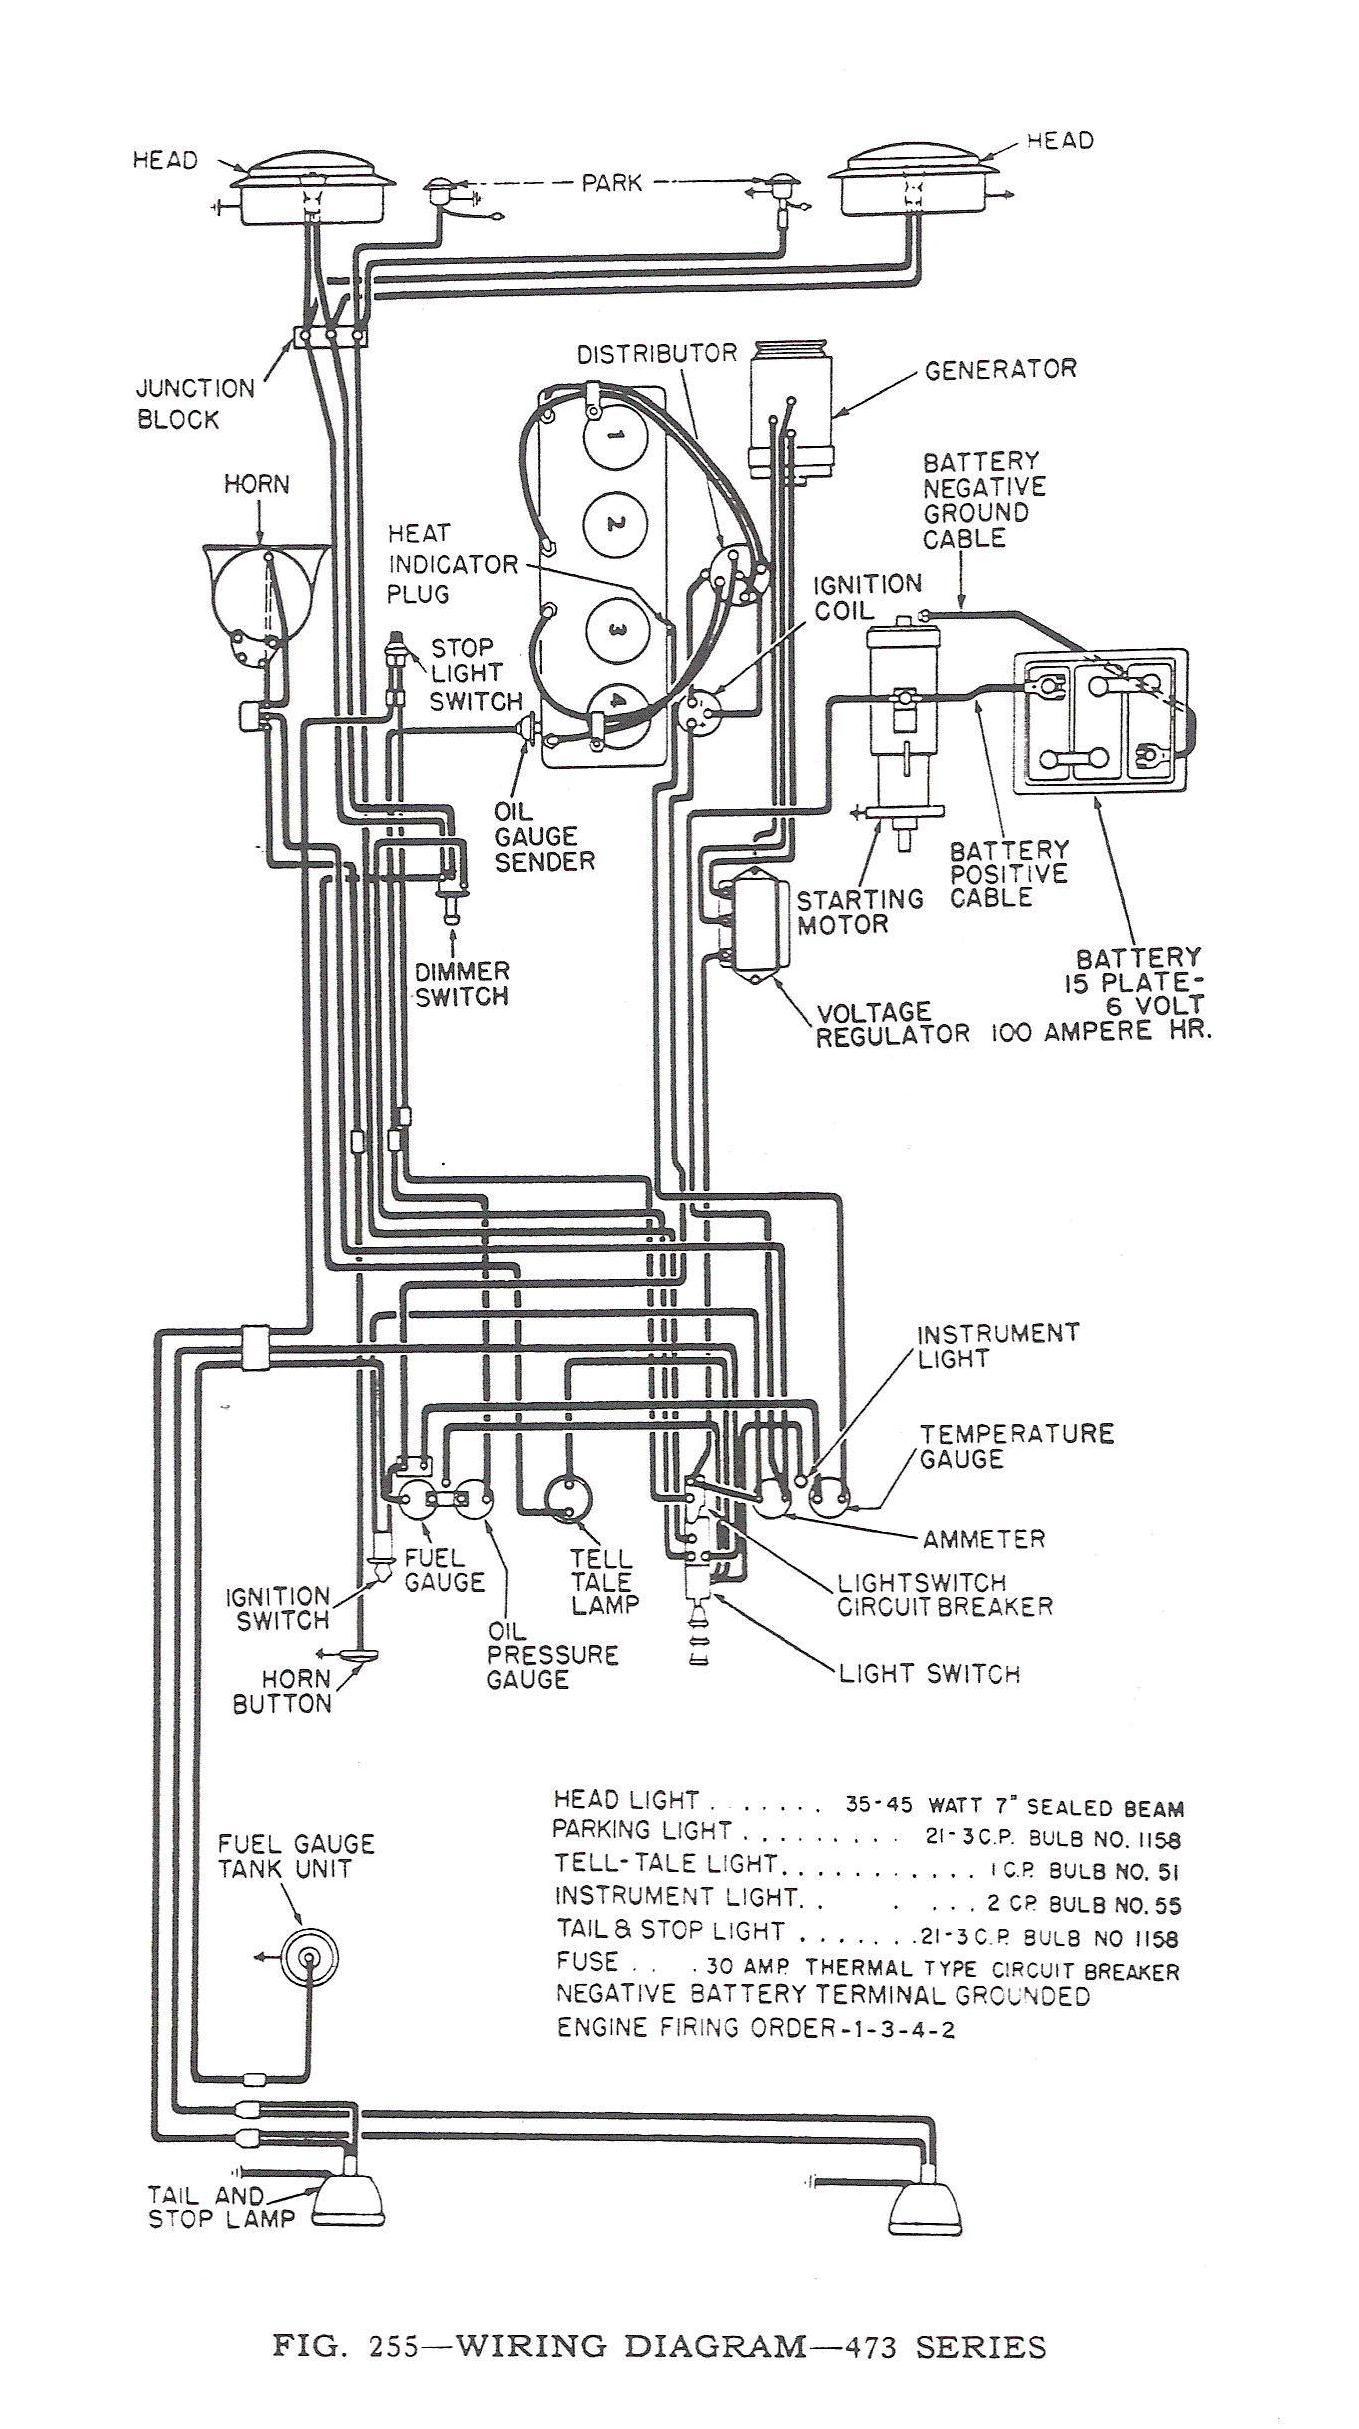 jeep cj5 wiring diagram coil wiring diagram libraries 1956 jeep cj5 wiring diagram wiring librarycj wiring diagram 1952 wiring schematic diagram 1972 jeep cj5